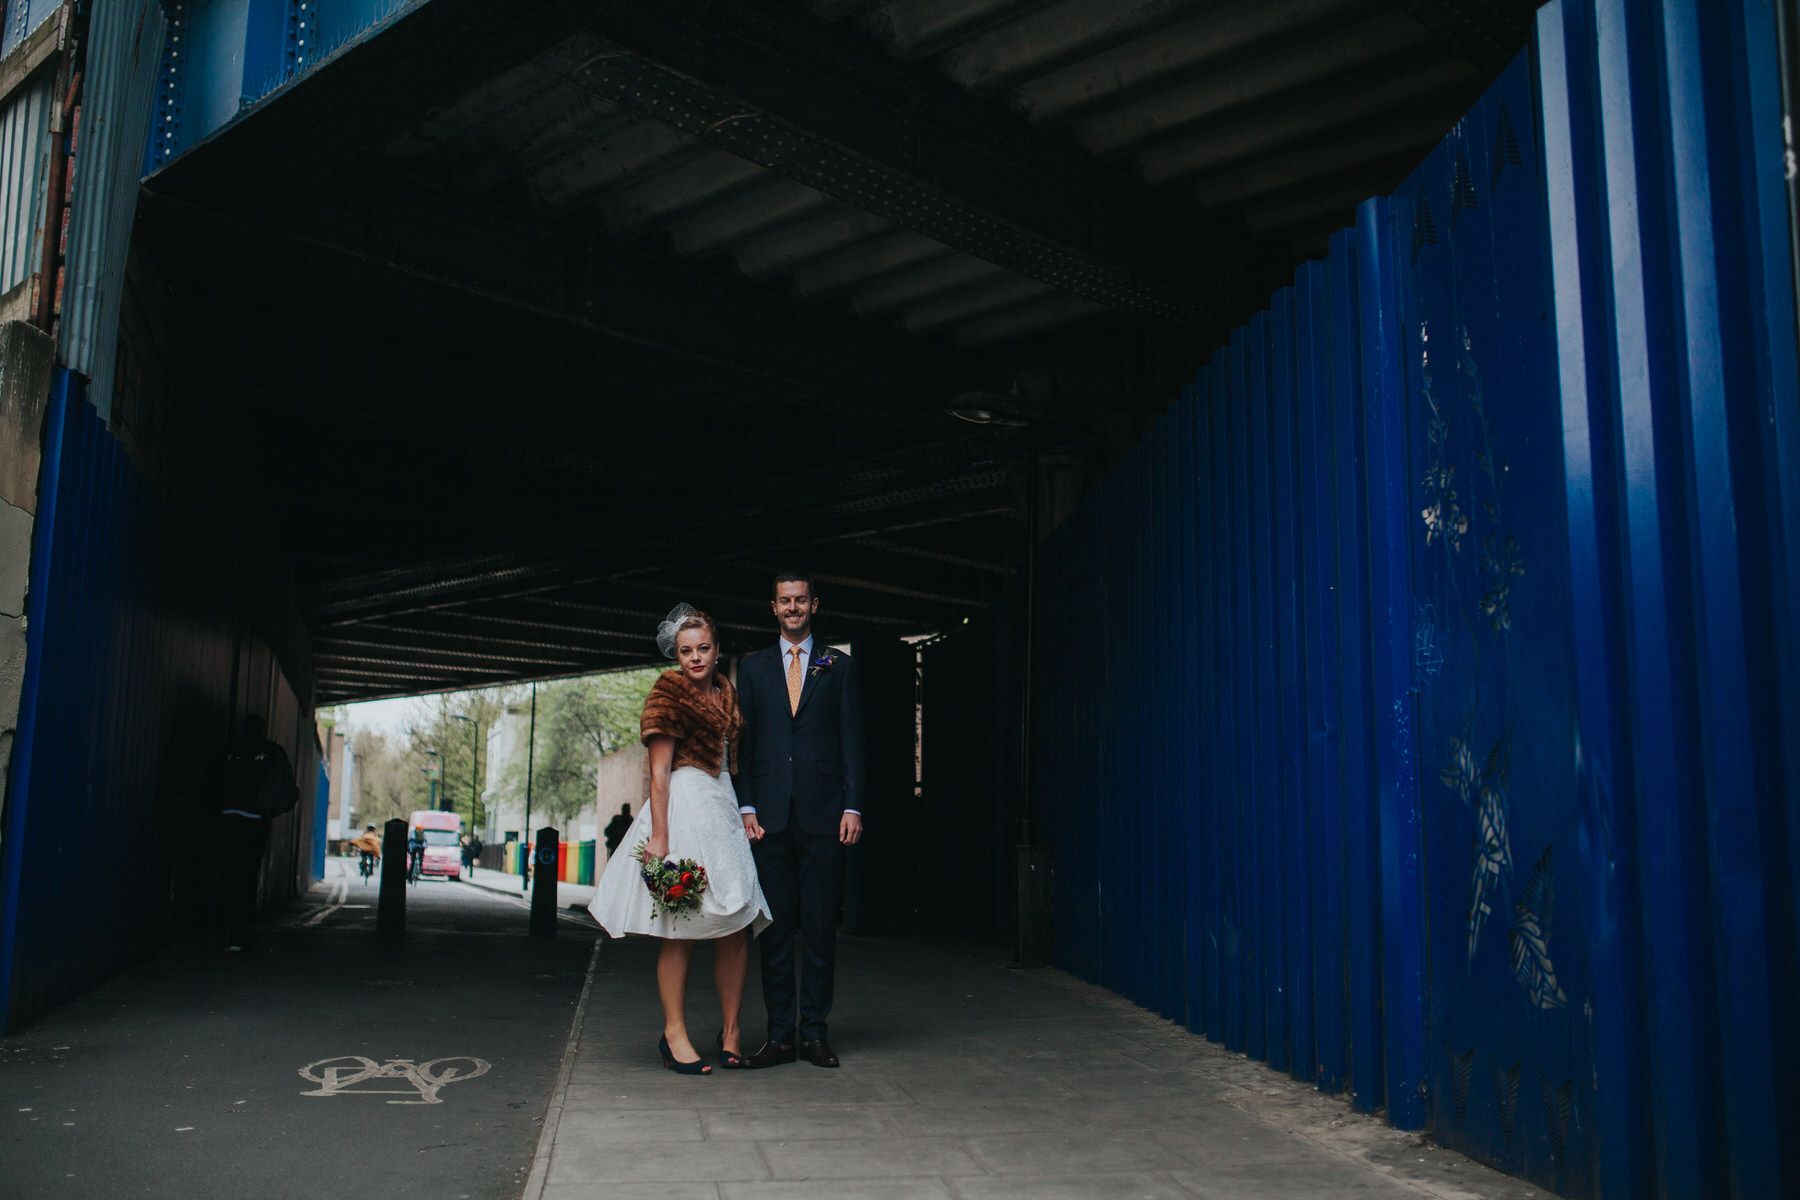 MS-Londesborough-Pub-wedding-Hackney-alternative-photographer-82-bright-blue-metal-background-urban-wedding-portrait-bride-groom-under-railway-bridge.jpg